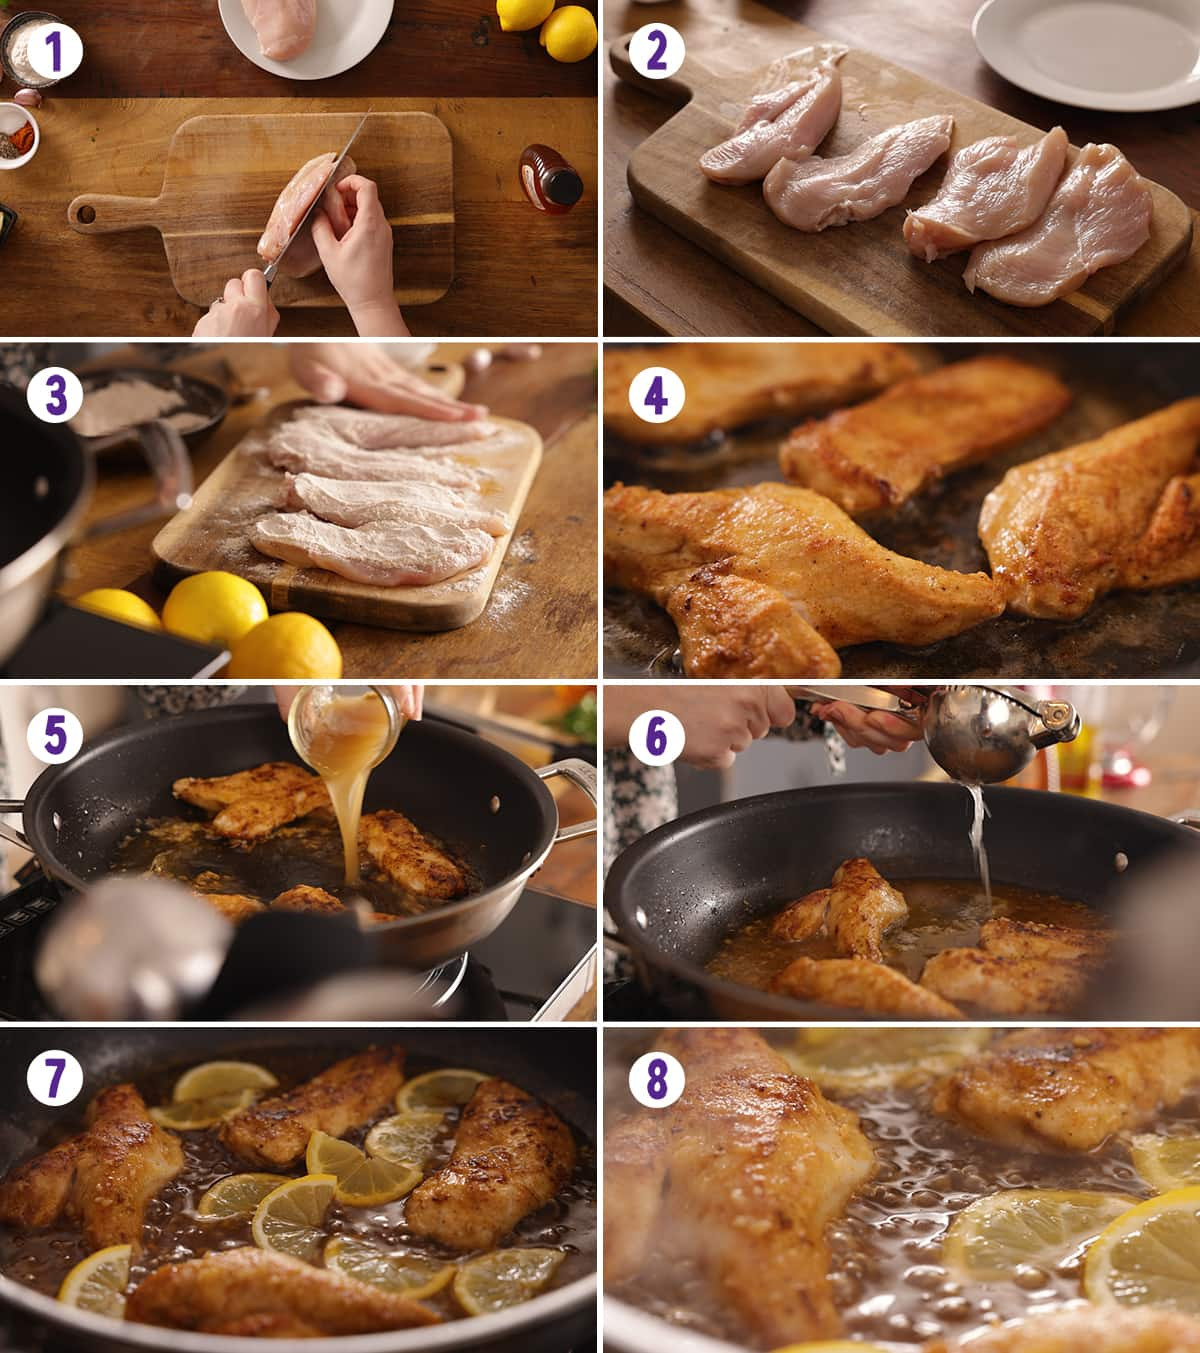 6 image collage showing how to make honey lemon chicken.